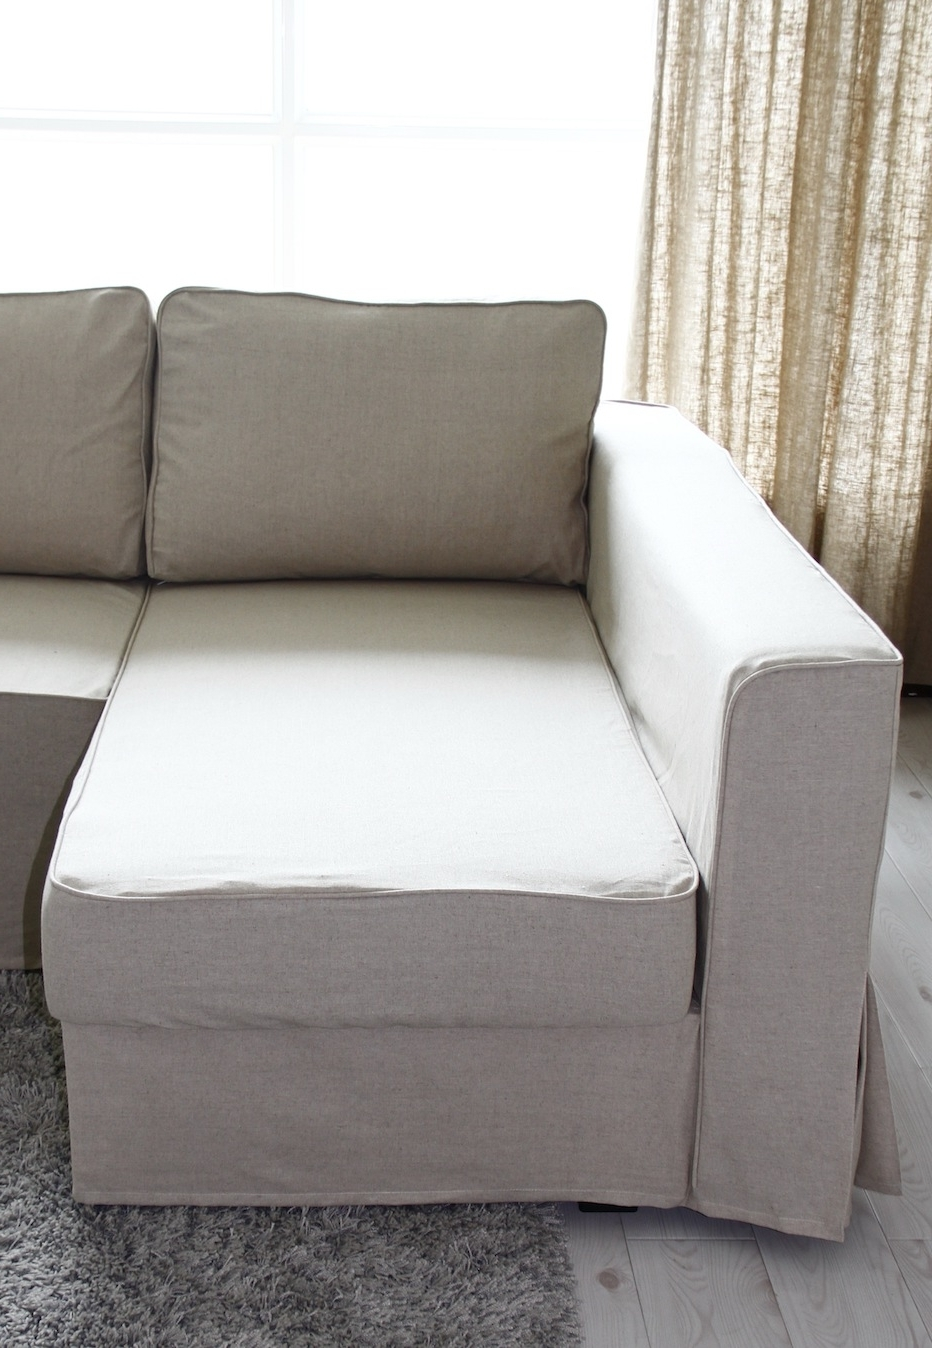 Chaise Lounge Sofa Covers Regarding Widely Used Fit Linen Manstad Sofa Slipcovers Now Available (View 7 of 15)